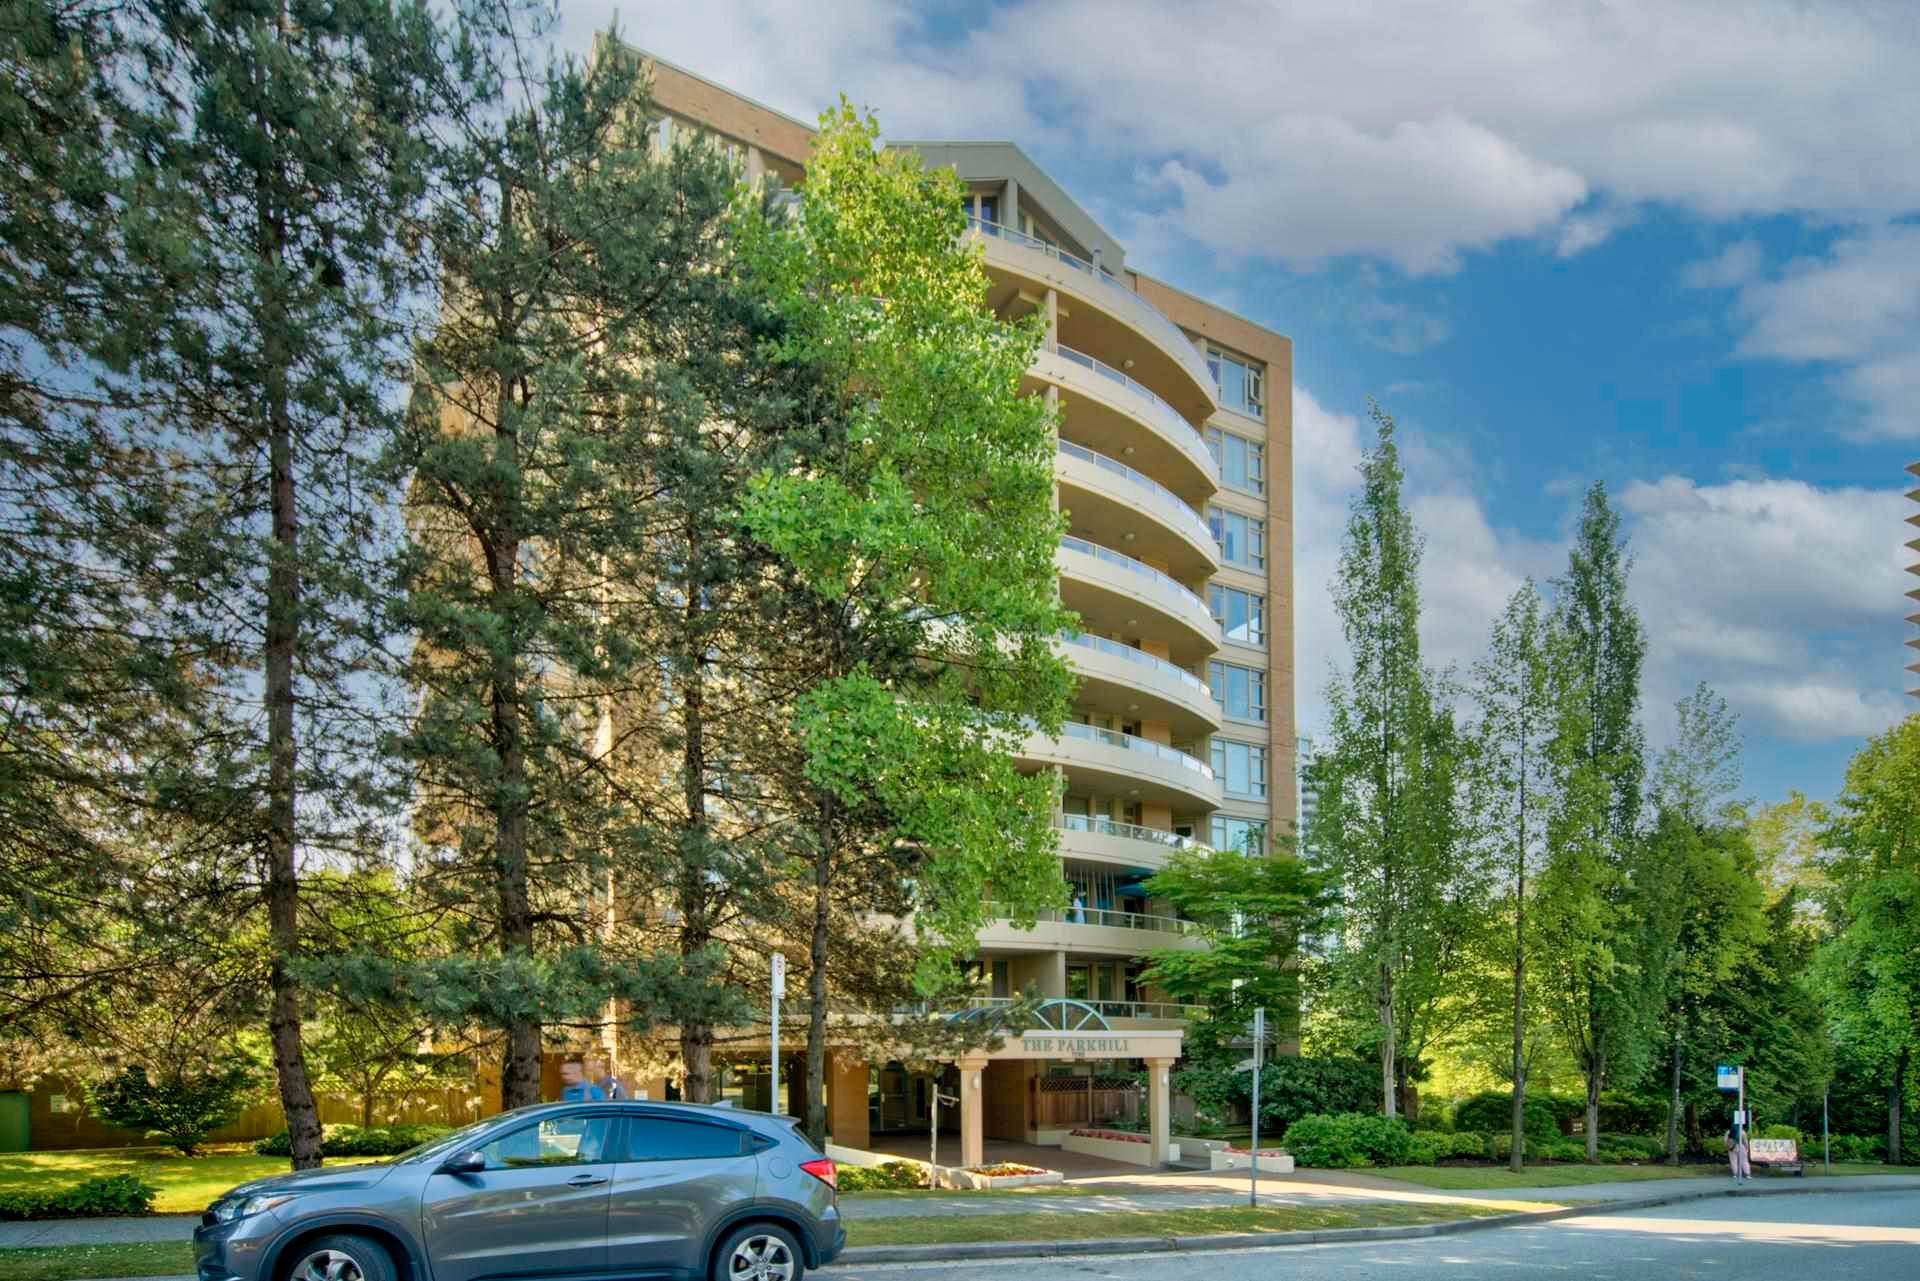 """Main Photo: 201 7108 EDMONDS Street in Burnaby: Edmonds BE Condo for sale in """"PARKHILL"""" (Burnaby East)  : MLS®# R2598512"""